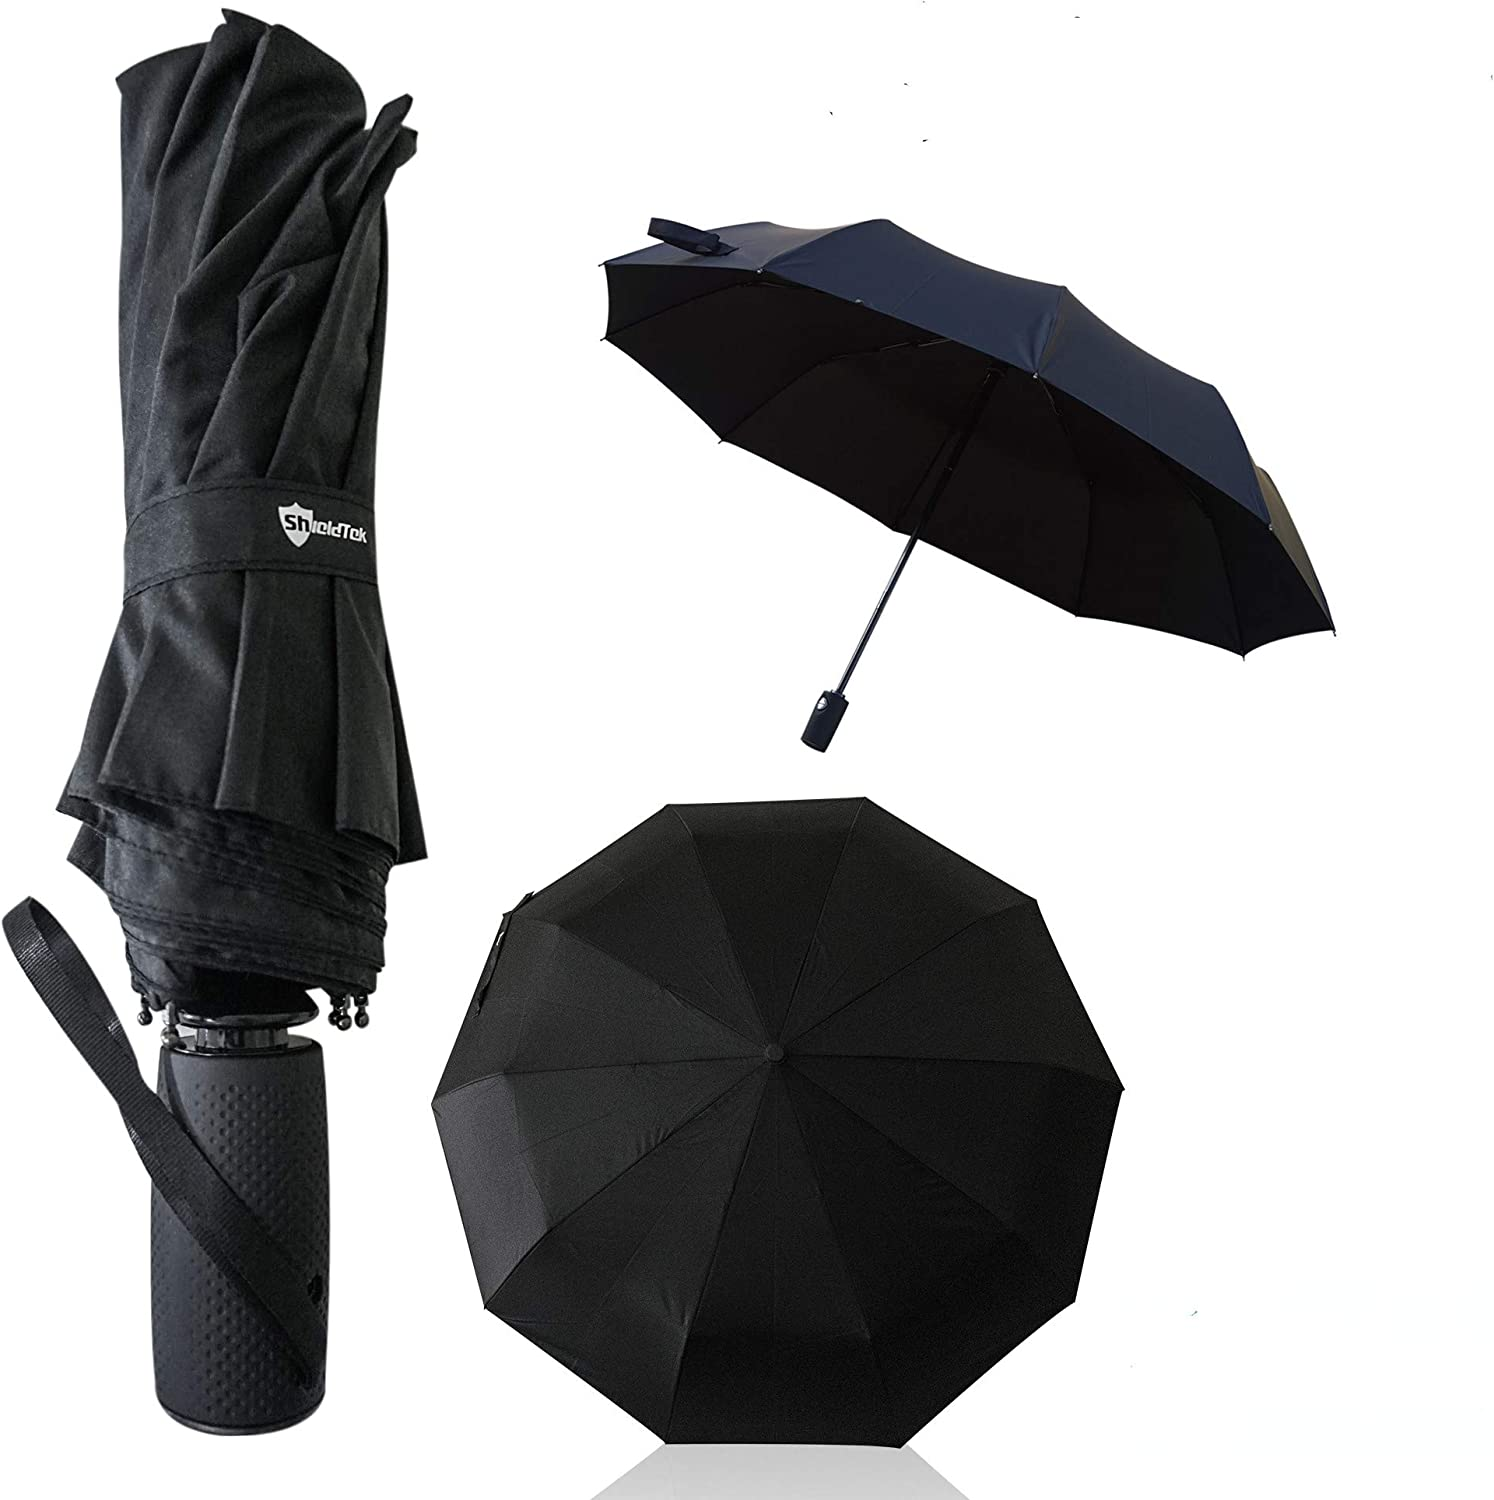 Color : Black YTSZM Compact Umbrella Auto Open /& Close Travel Folding Umbrella with Reinforced 8 Ribs Slip-Proof Handle for Easy Carry,Protection Windproof Fast Drying Umbrella